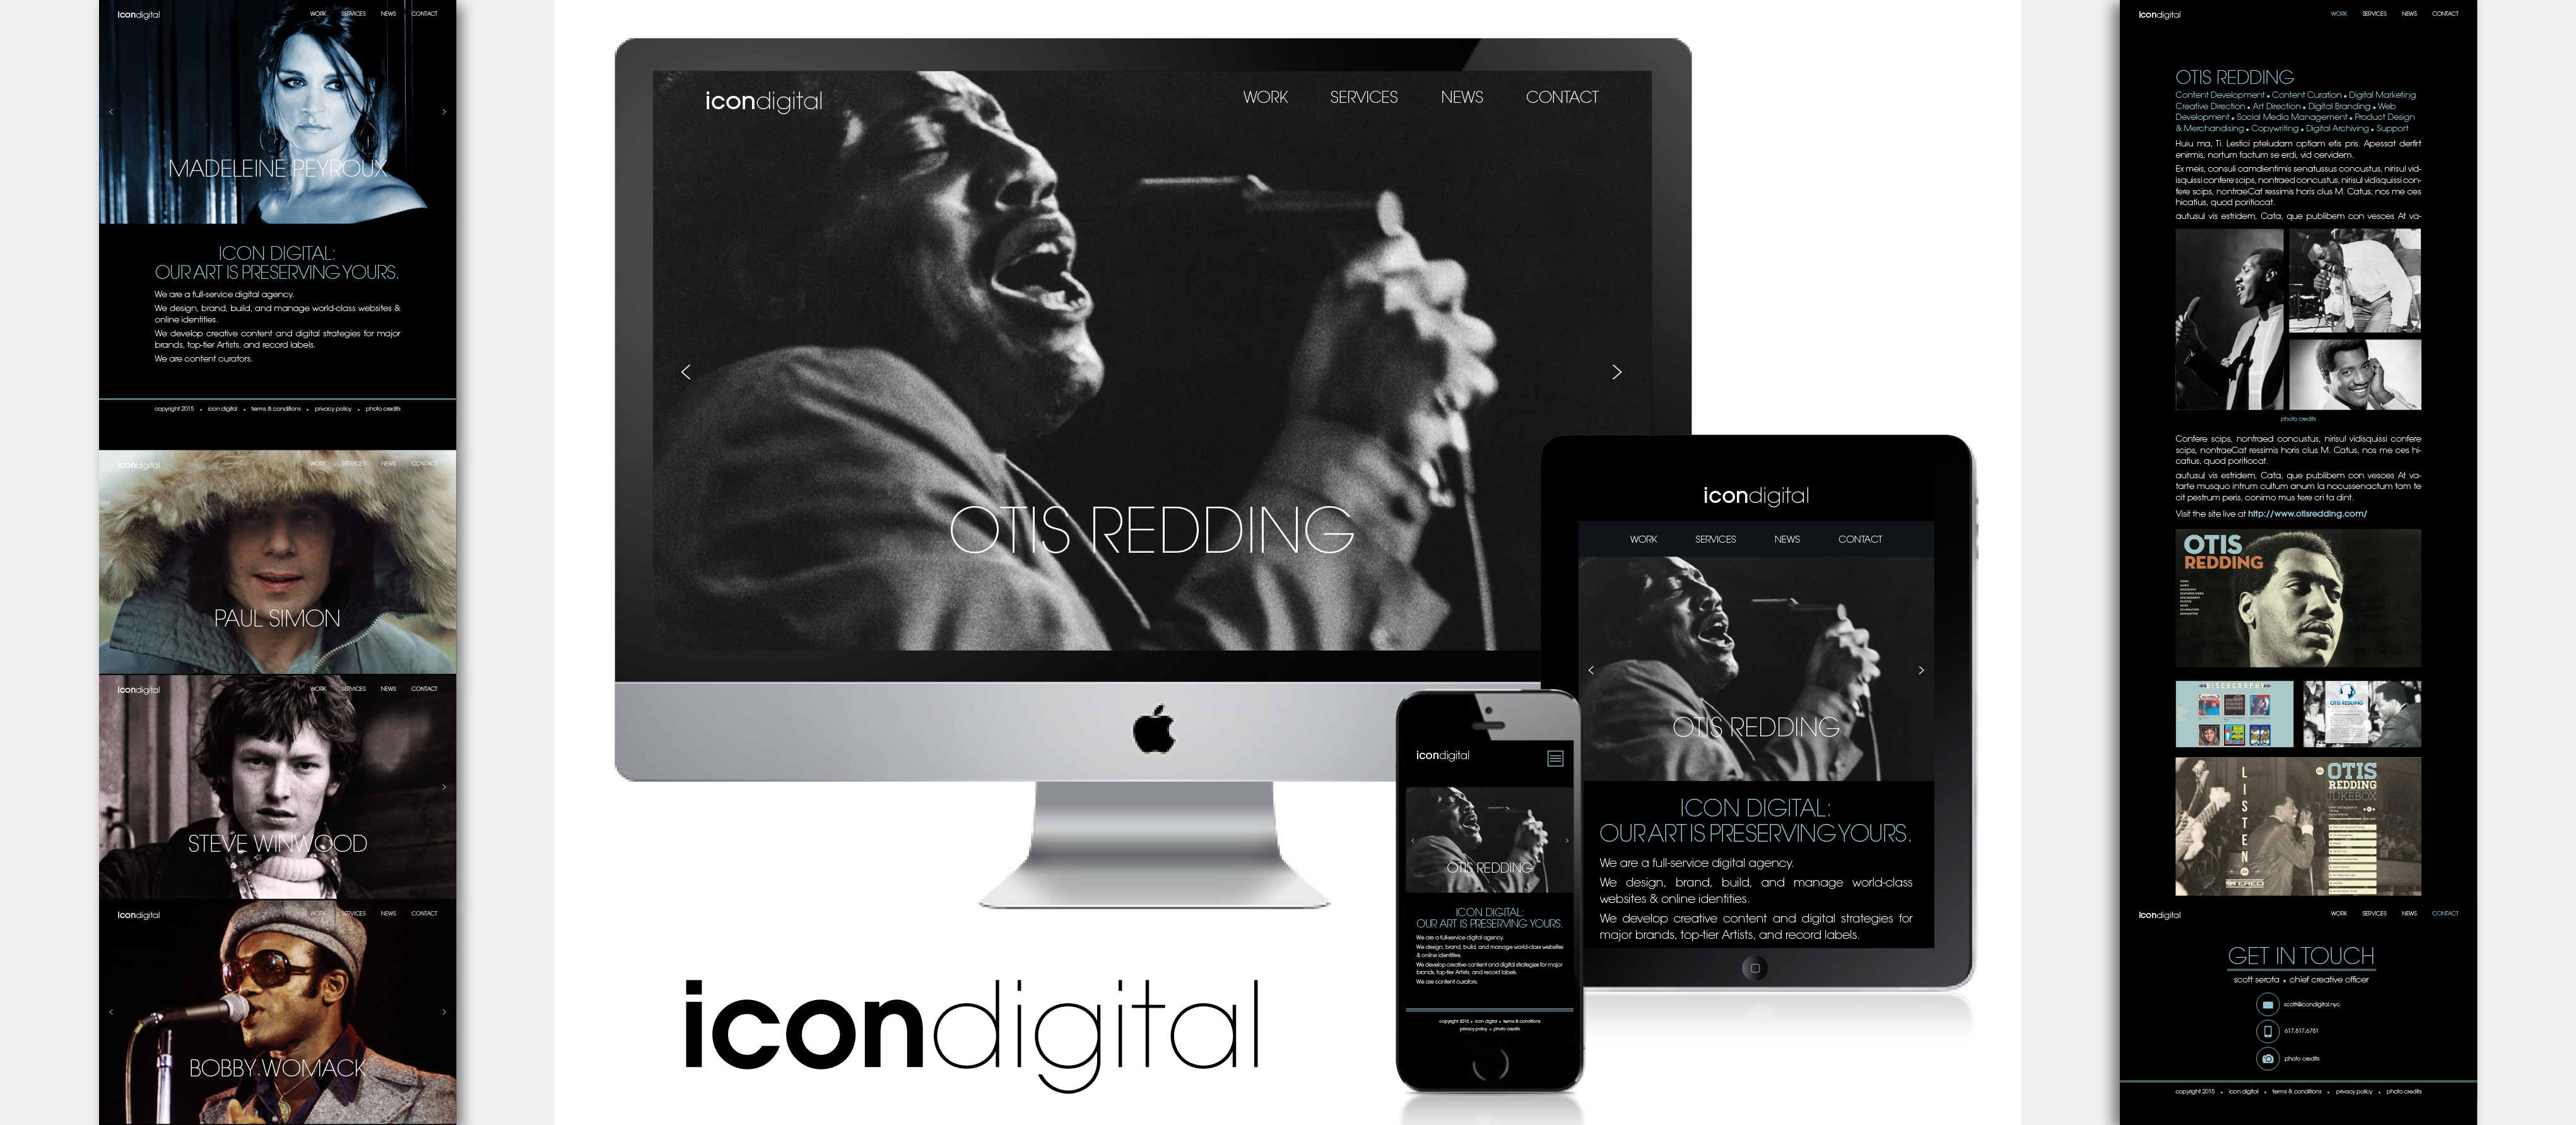 IconDigital.nyc